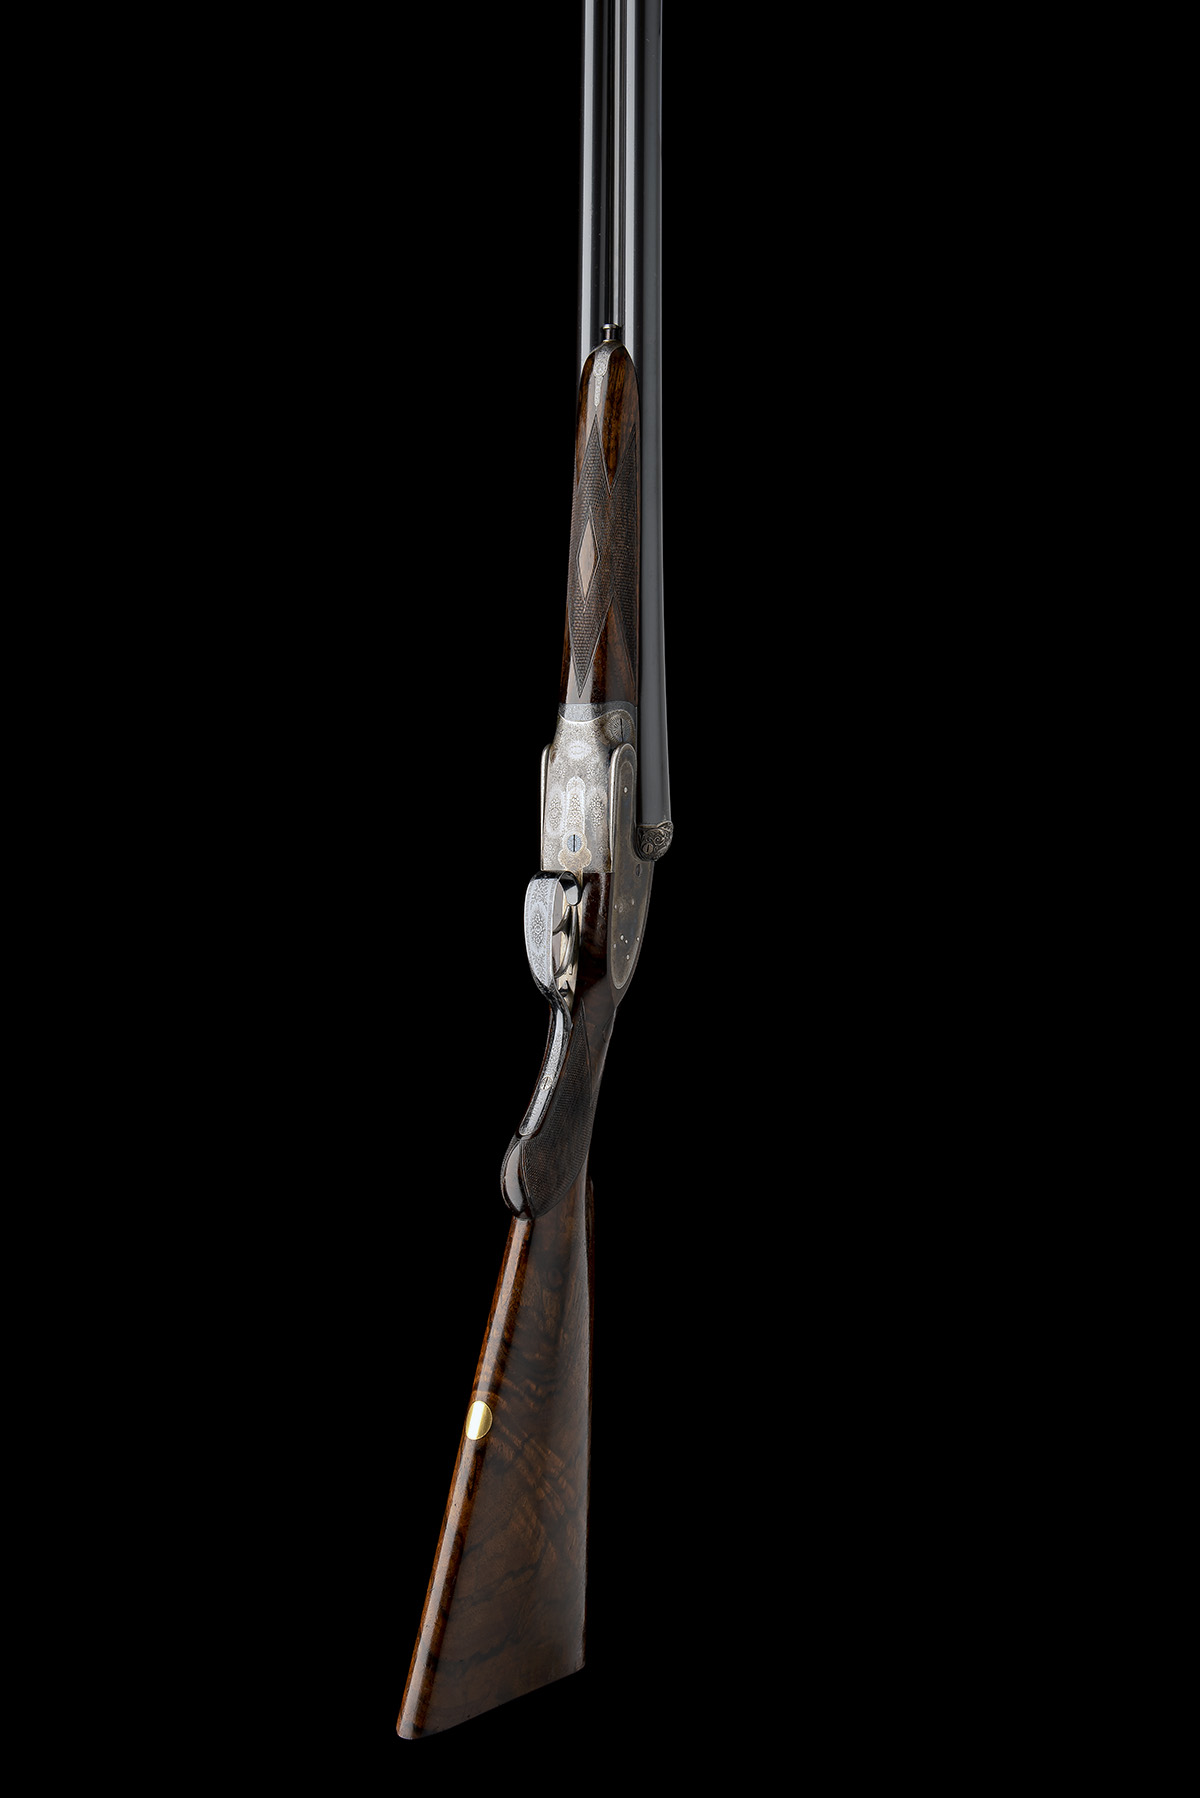 J. PURDEY & SONS A FINE 12-BORE (3IN.) SELF-OPENING SIDELOCK EJECTOR WILDFOWLING GUN, serial no. - Image 8 of 11